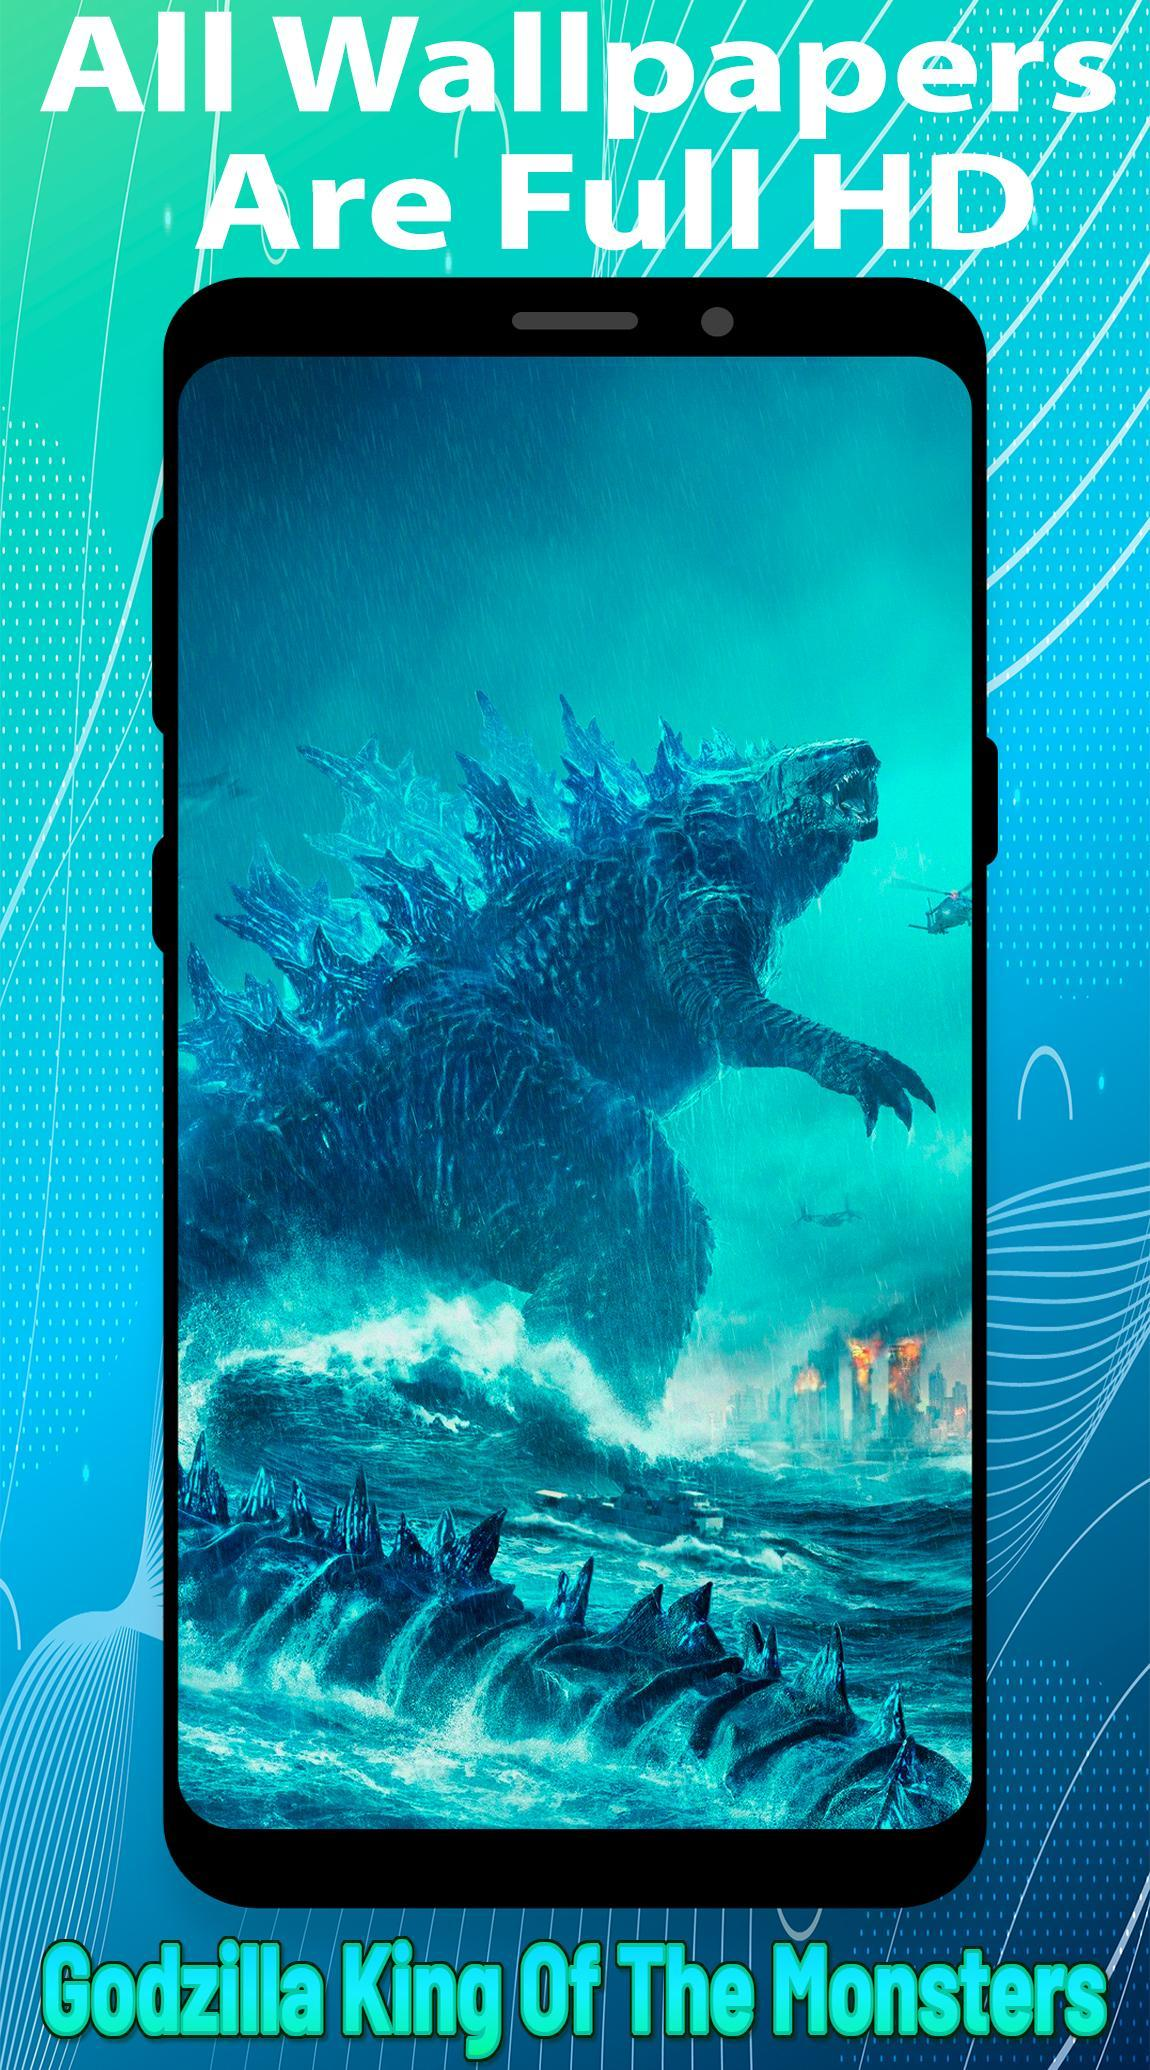 Godzilla Wallpapers Full Hd Pro For Android Apk Download